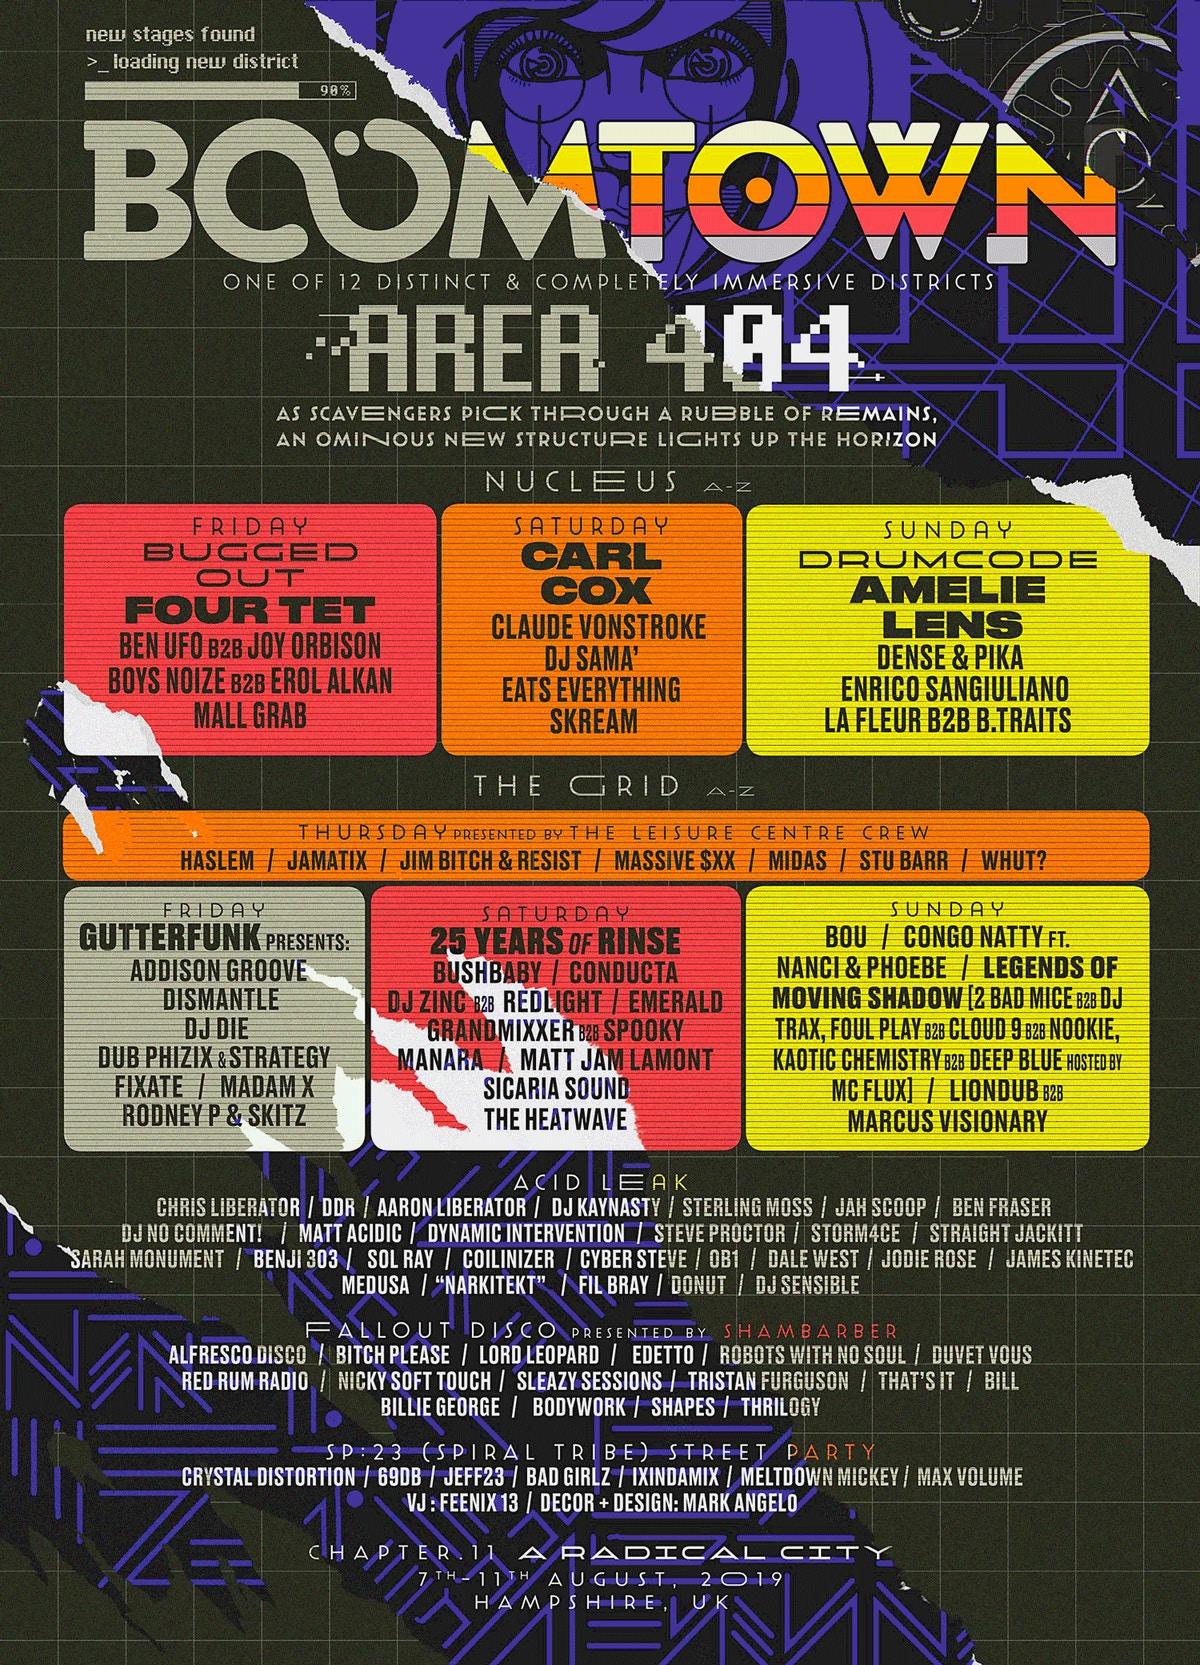 DISTRICT ANNOUNCEMENT: AREA 404 | Boomtown Chapter 12 - New